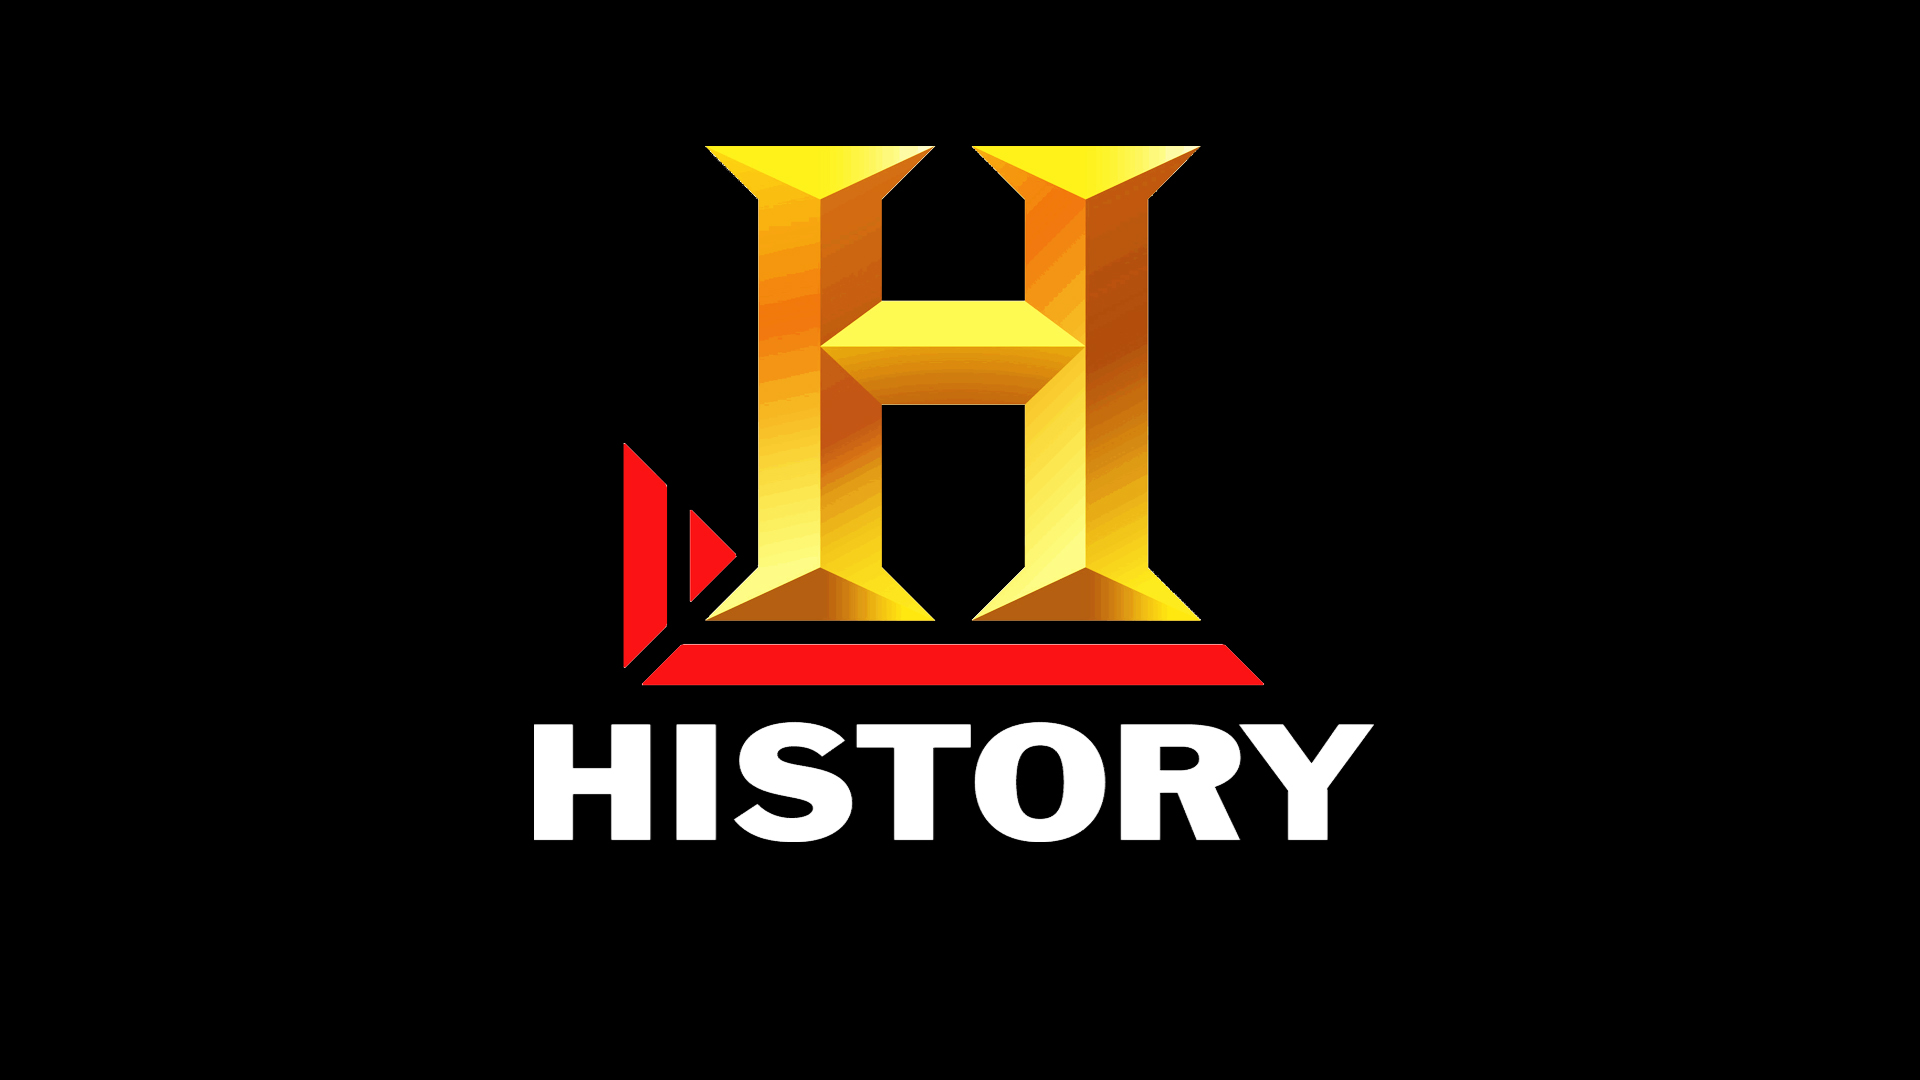 the history channel black logo wallpaper 1920x1080